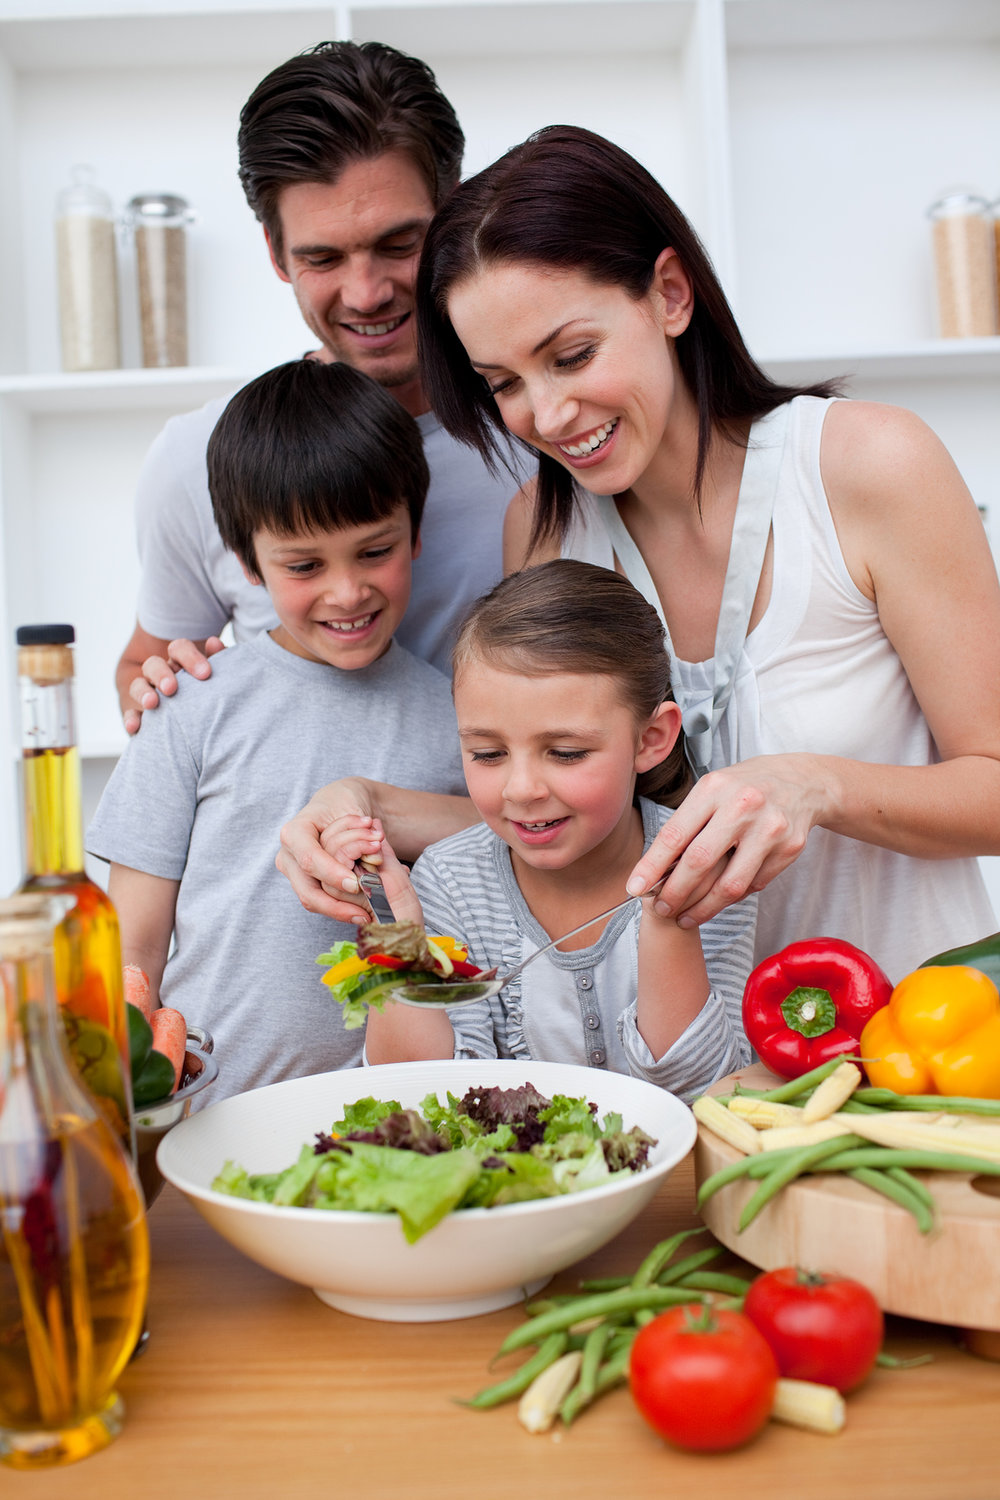 bigstock-Happy-Family-Cooking-Together-6460207.jpg